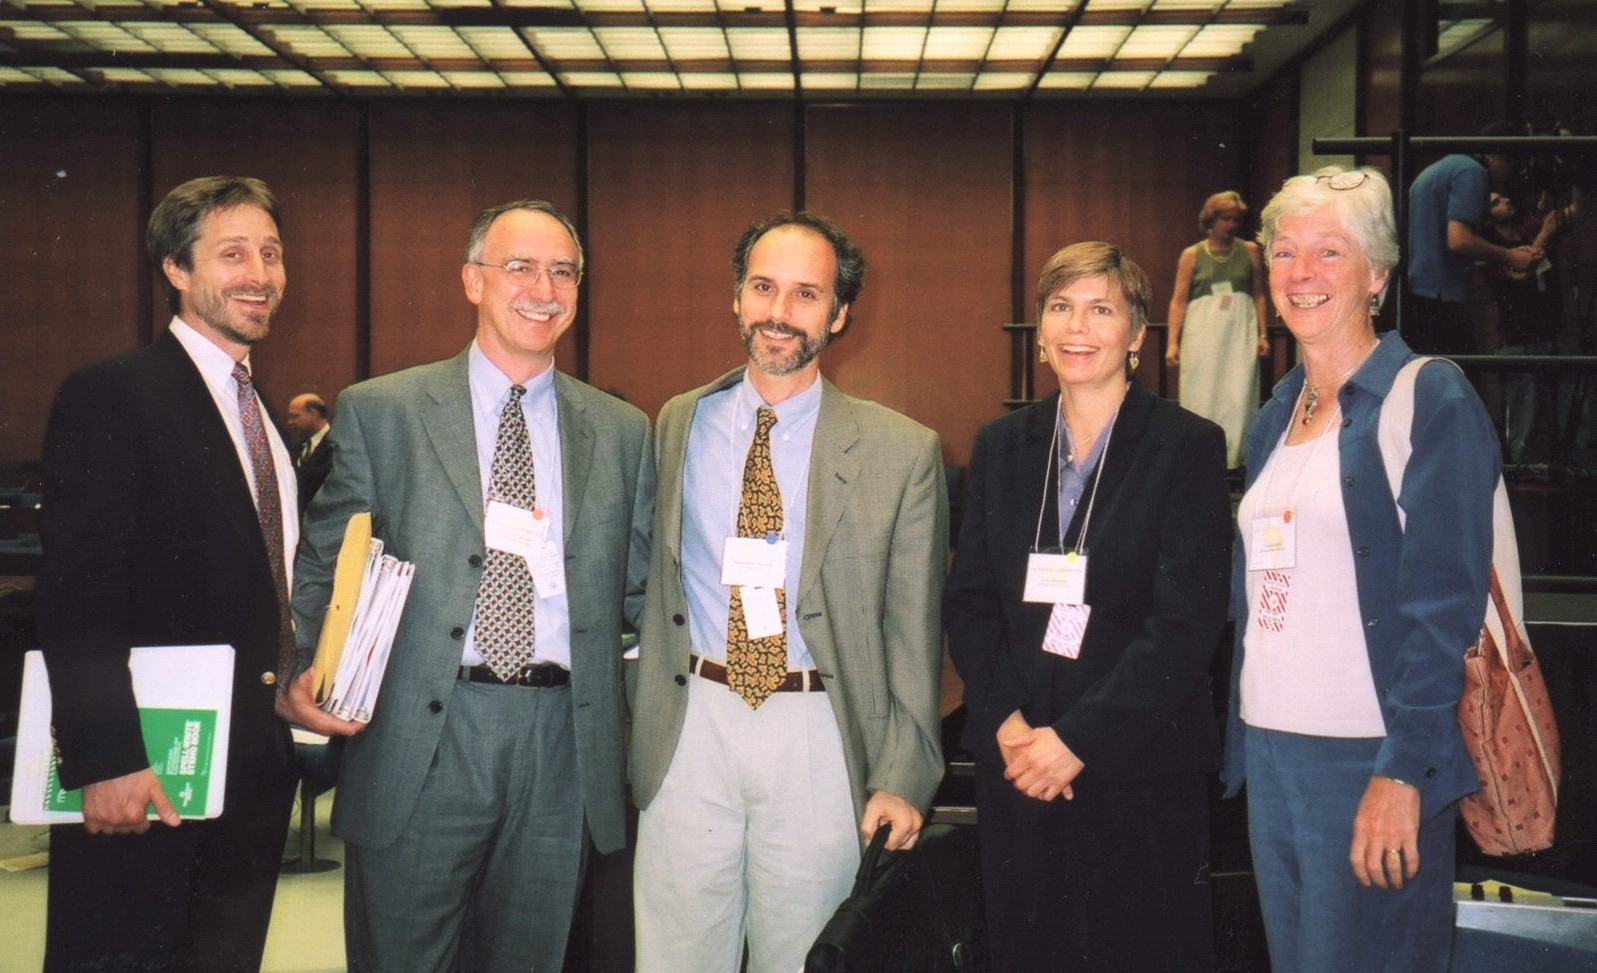 FSG_Team_Tschirley_Weber_Howard_Kelly_Partnership_Meeting_2001